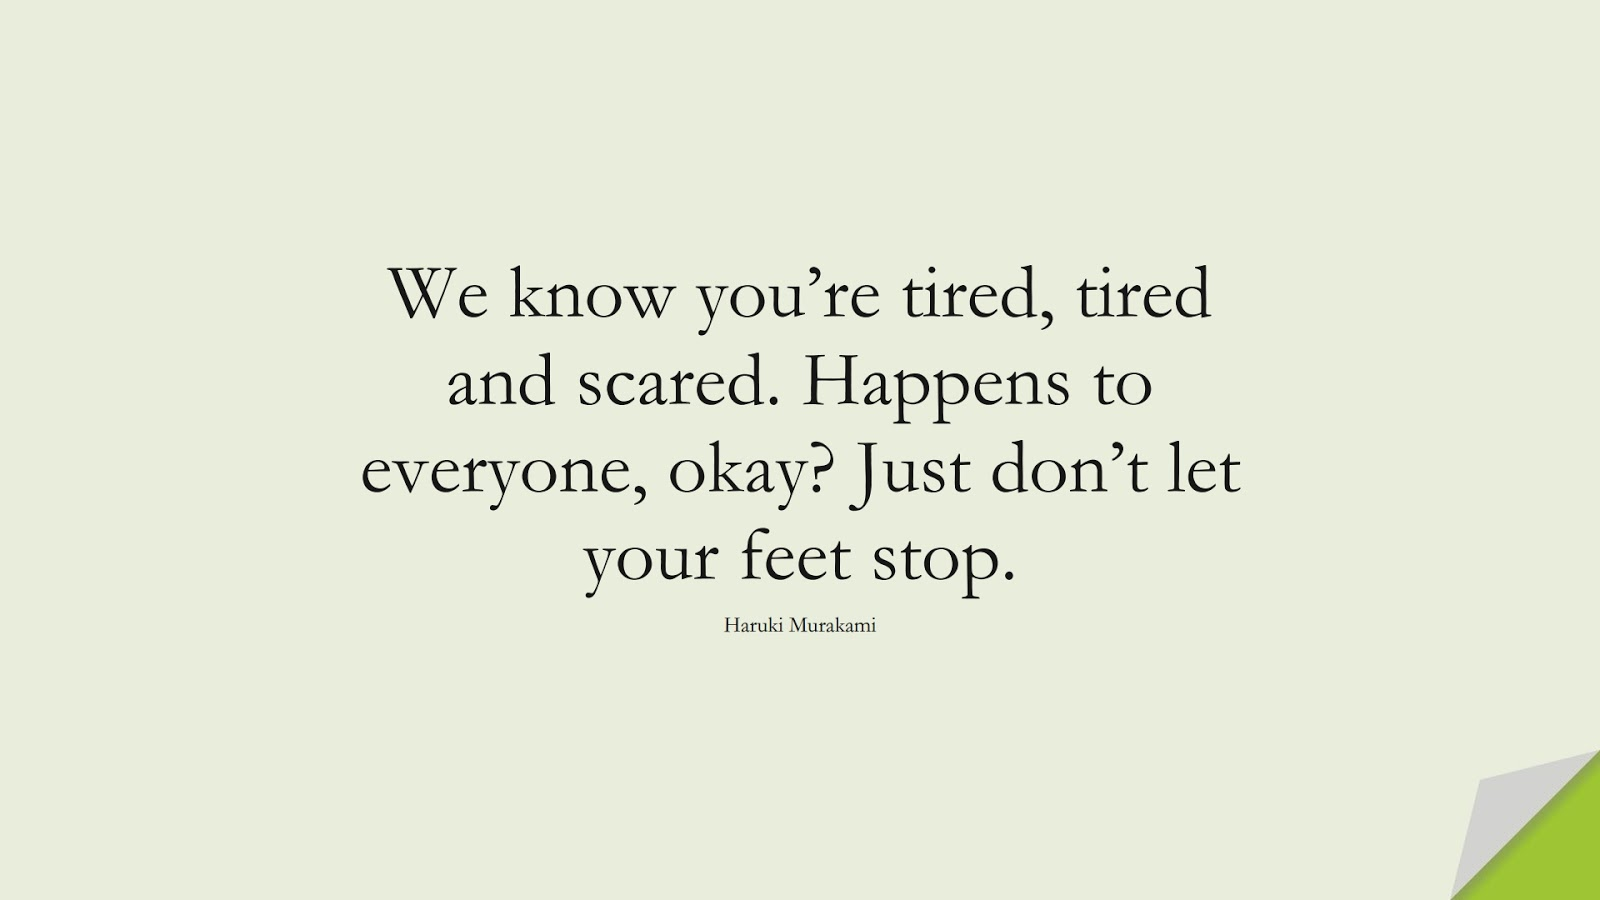 We know you're tired, tired and scared. Happens to everyone, okay? Just don't let your feet stop. (Haruki Murakami);  #DepressionQuotes